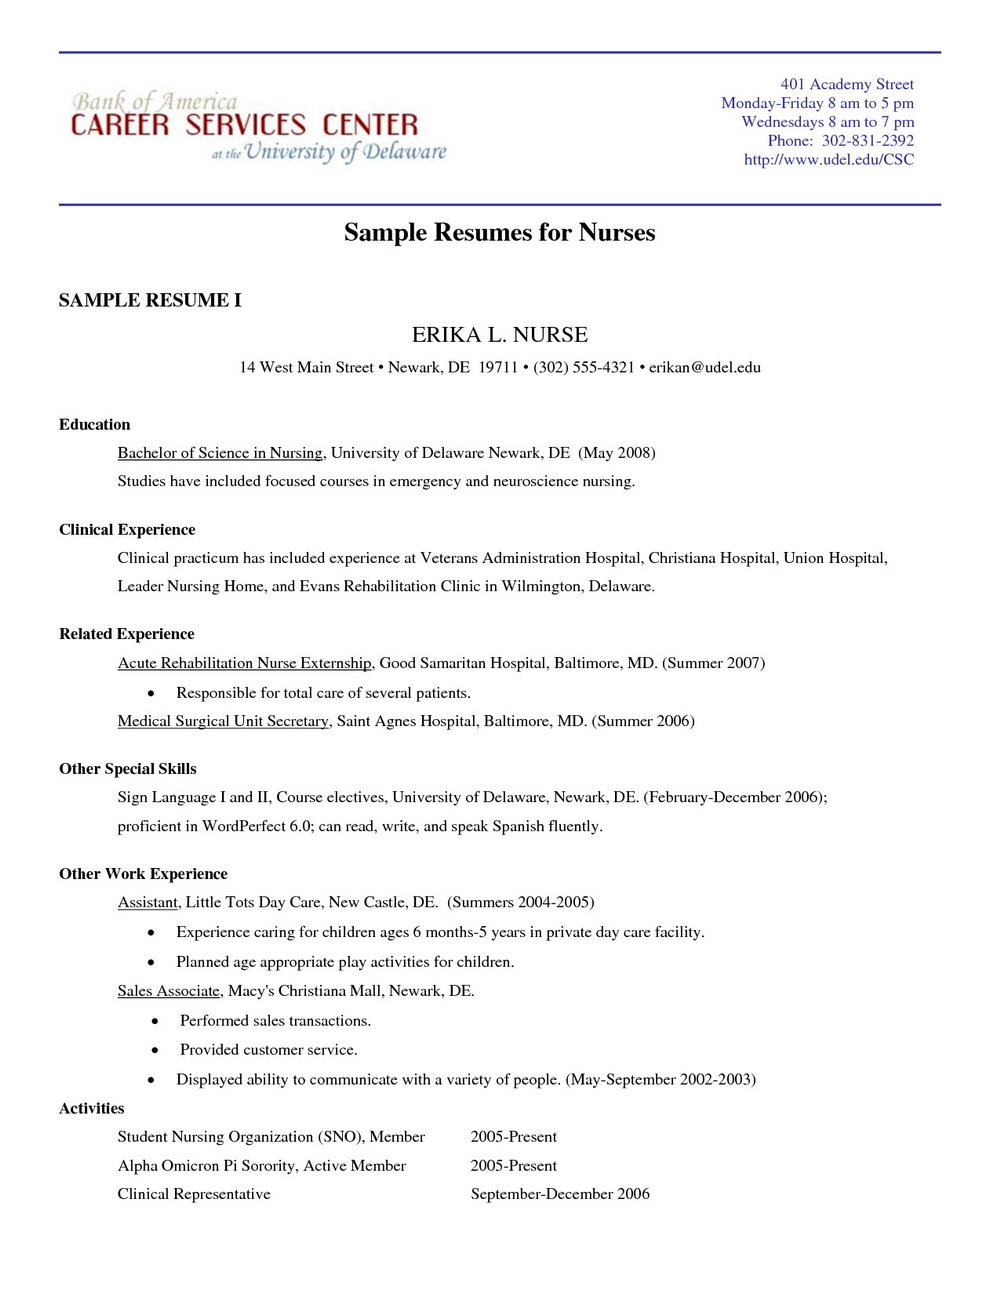 Resume Samples For Nurses Pdf